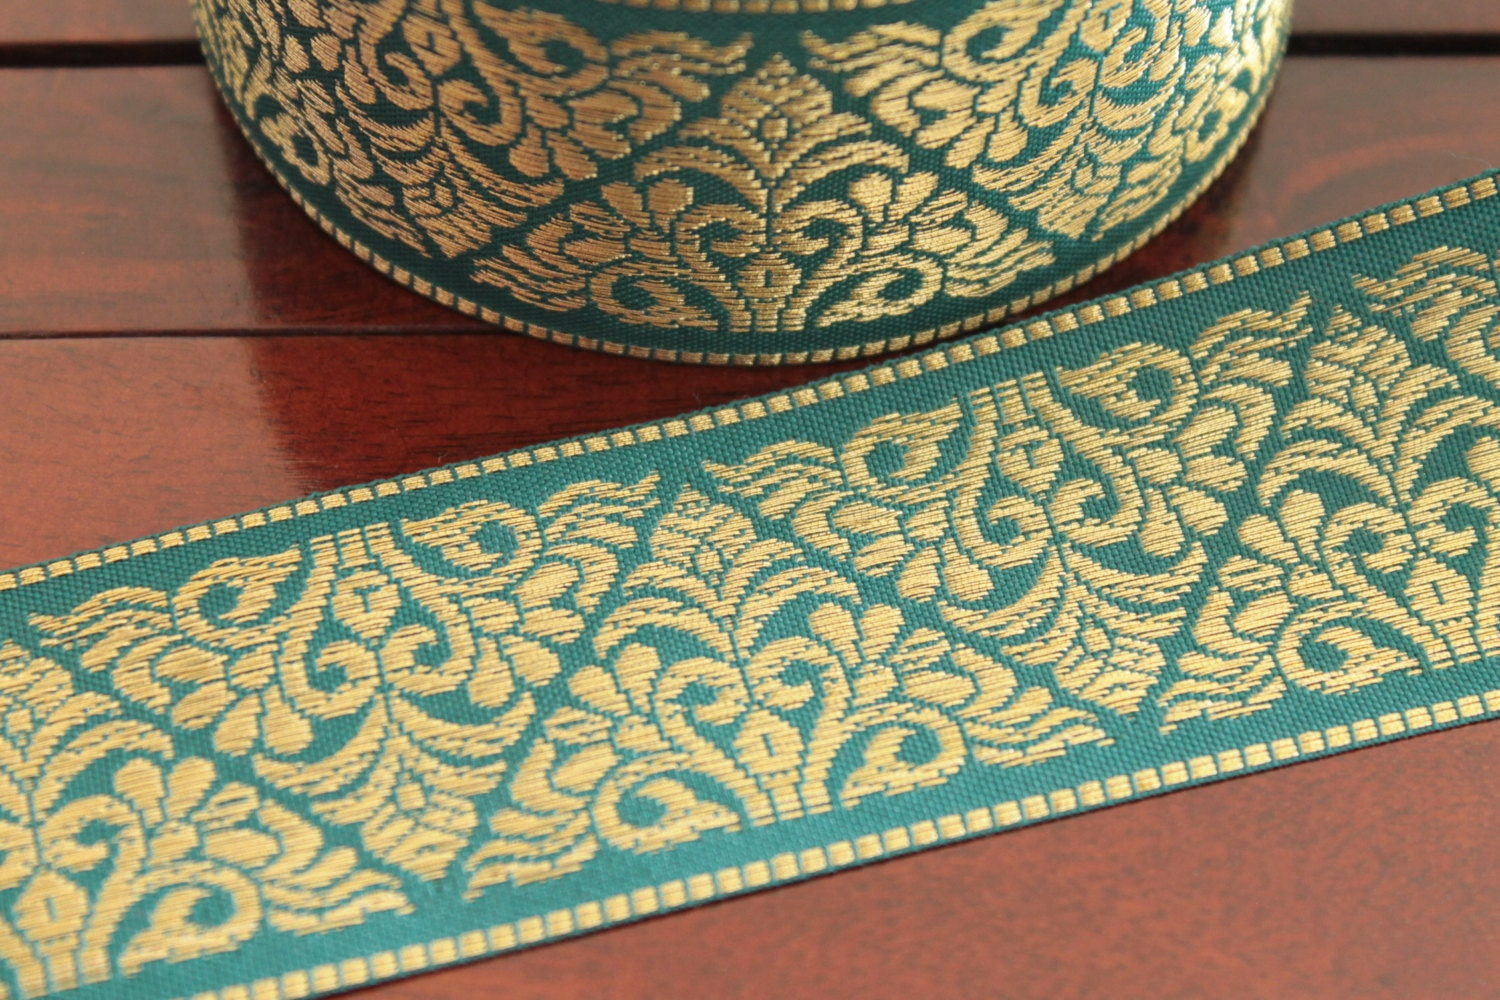 Home Decor Items In India 1 Yard Decorative Fabric Trim Peacock Green Woven Ribbon